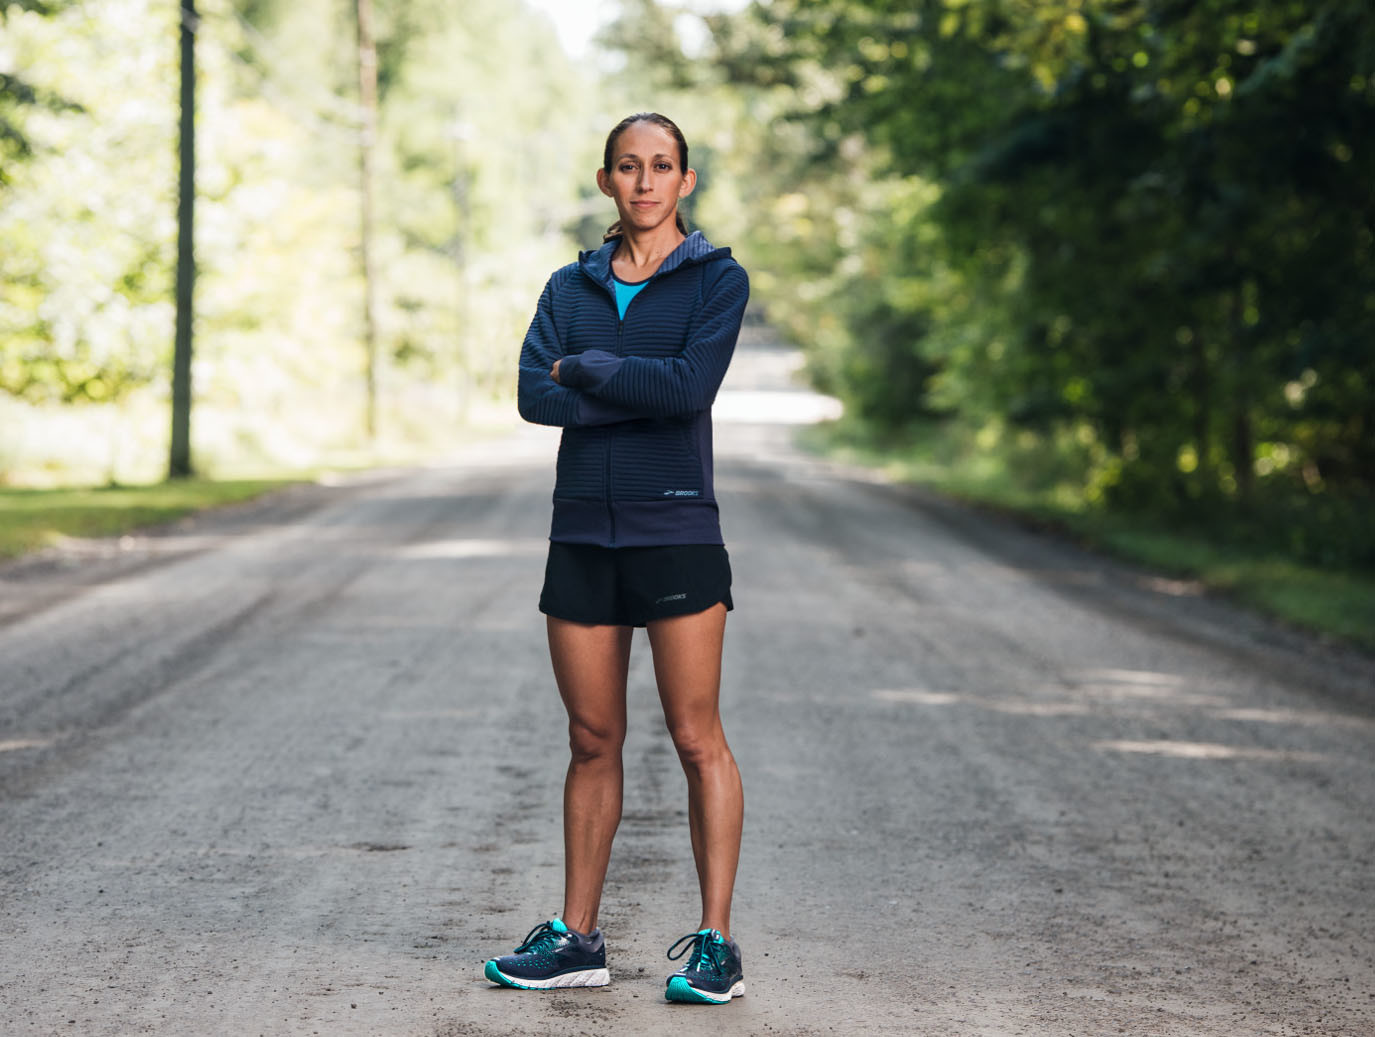 2018 Boston Marathon Winner Desiree Linden will run the Louisiana Half Marathon in January